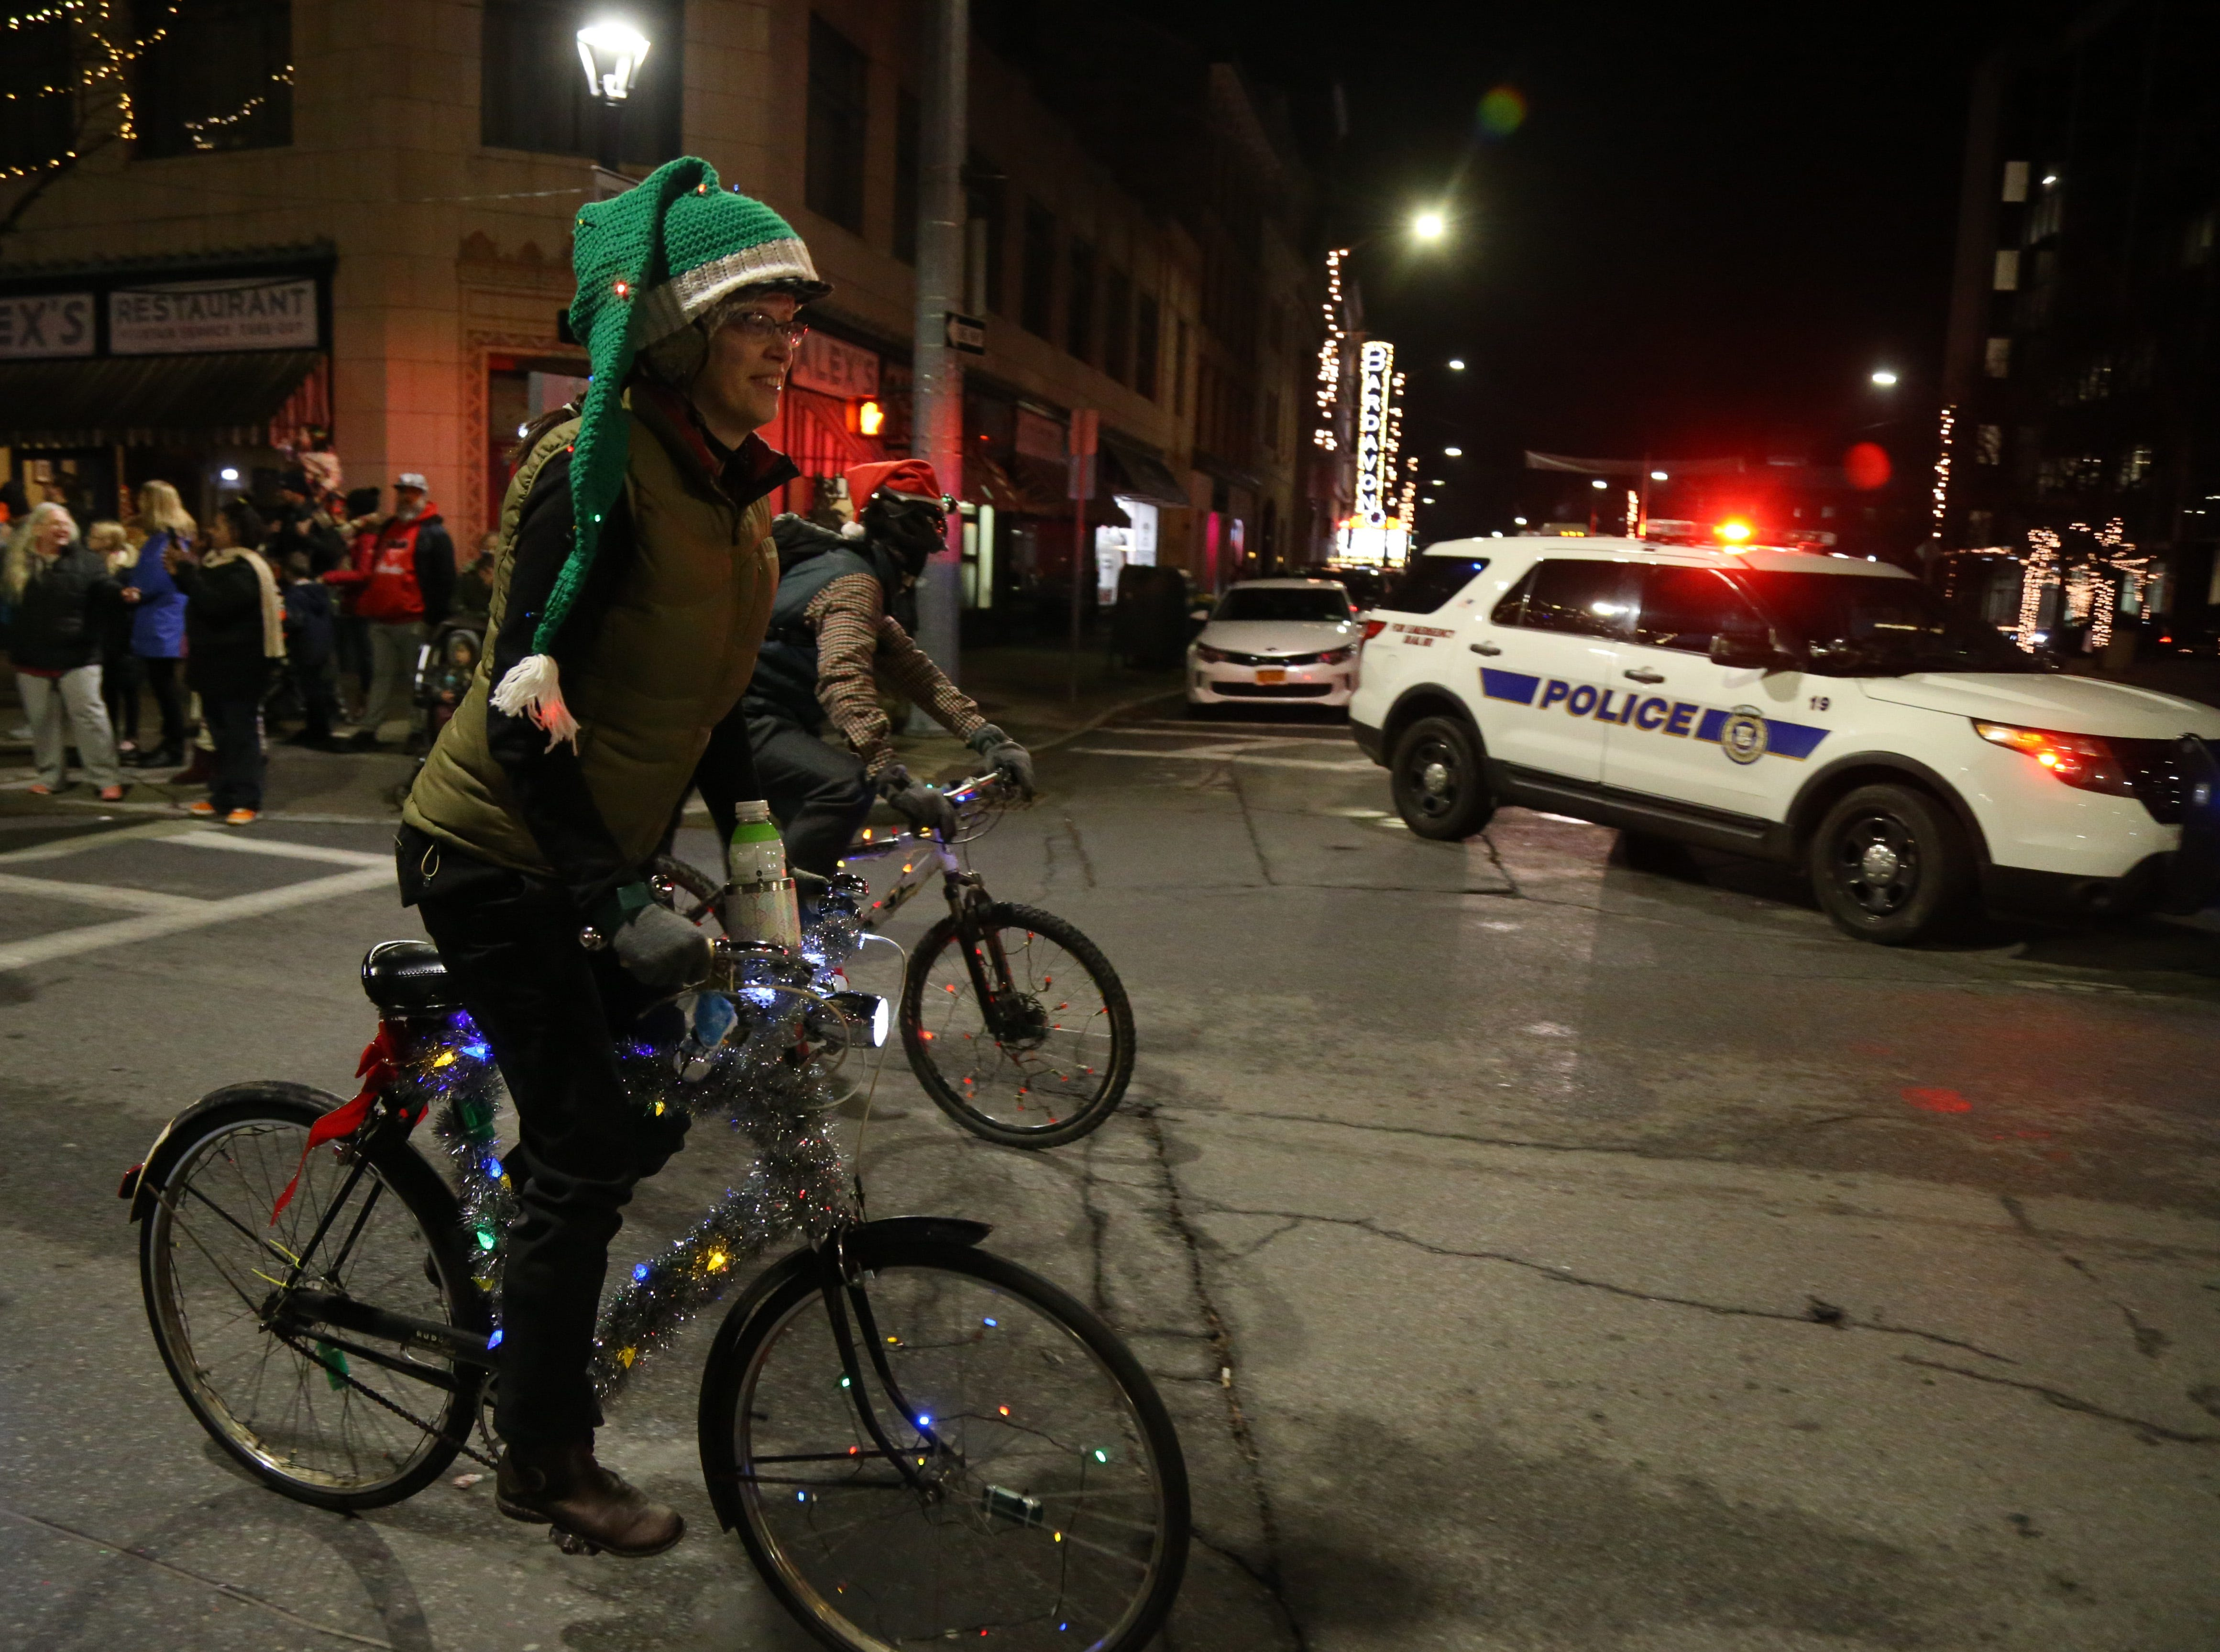 Cara Gentry of Kingston pedals through the intersection of Main Street and Market Street with the Fats in the Cats Bicycle Club during the Celebration of Lights in the City of Poughkeepsie on November 30, 2018.